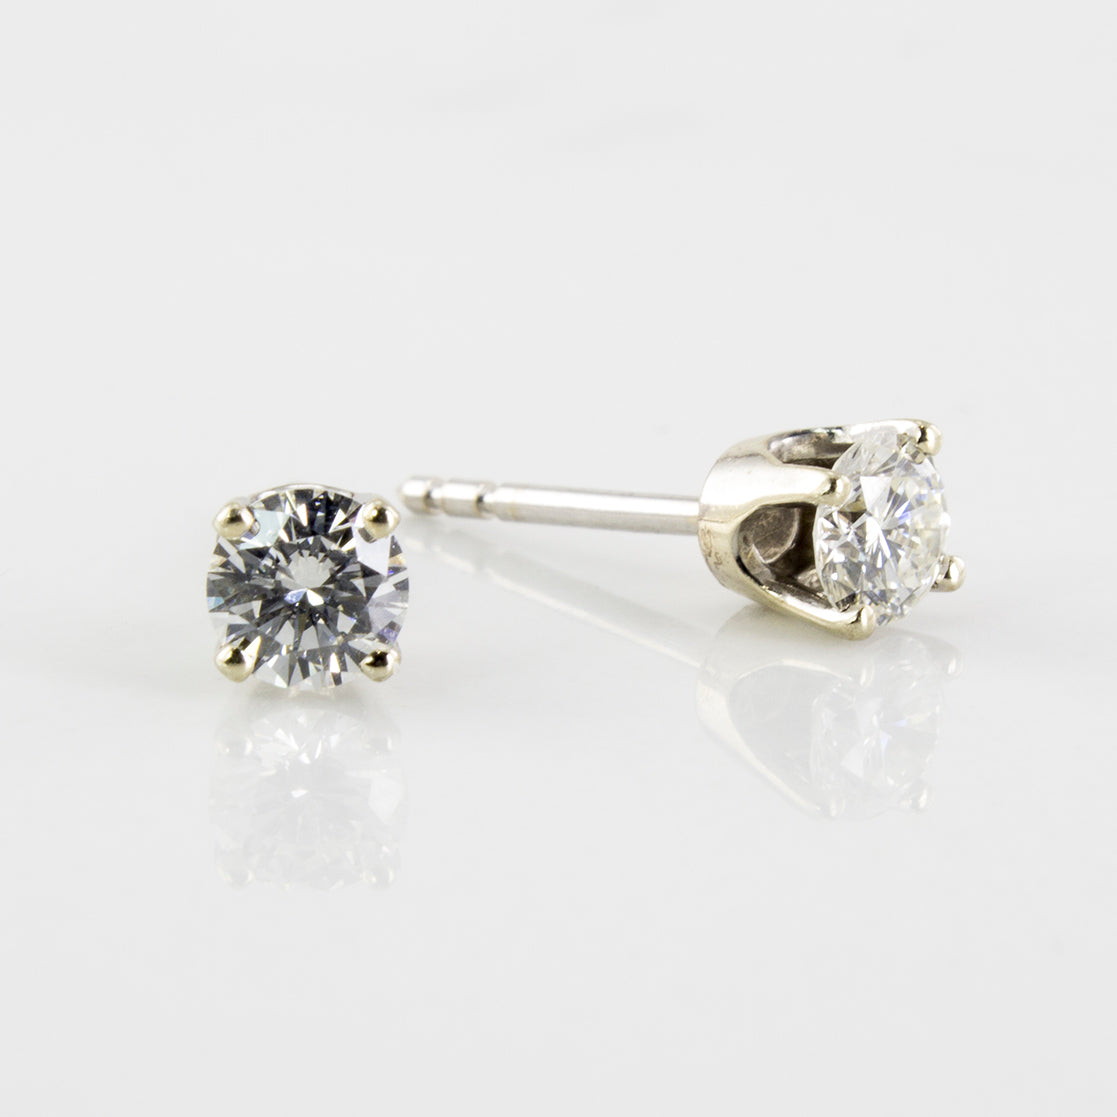 Diamond Solitaire Stud Earrings | 0.50 ctw |